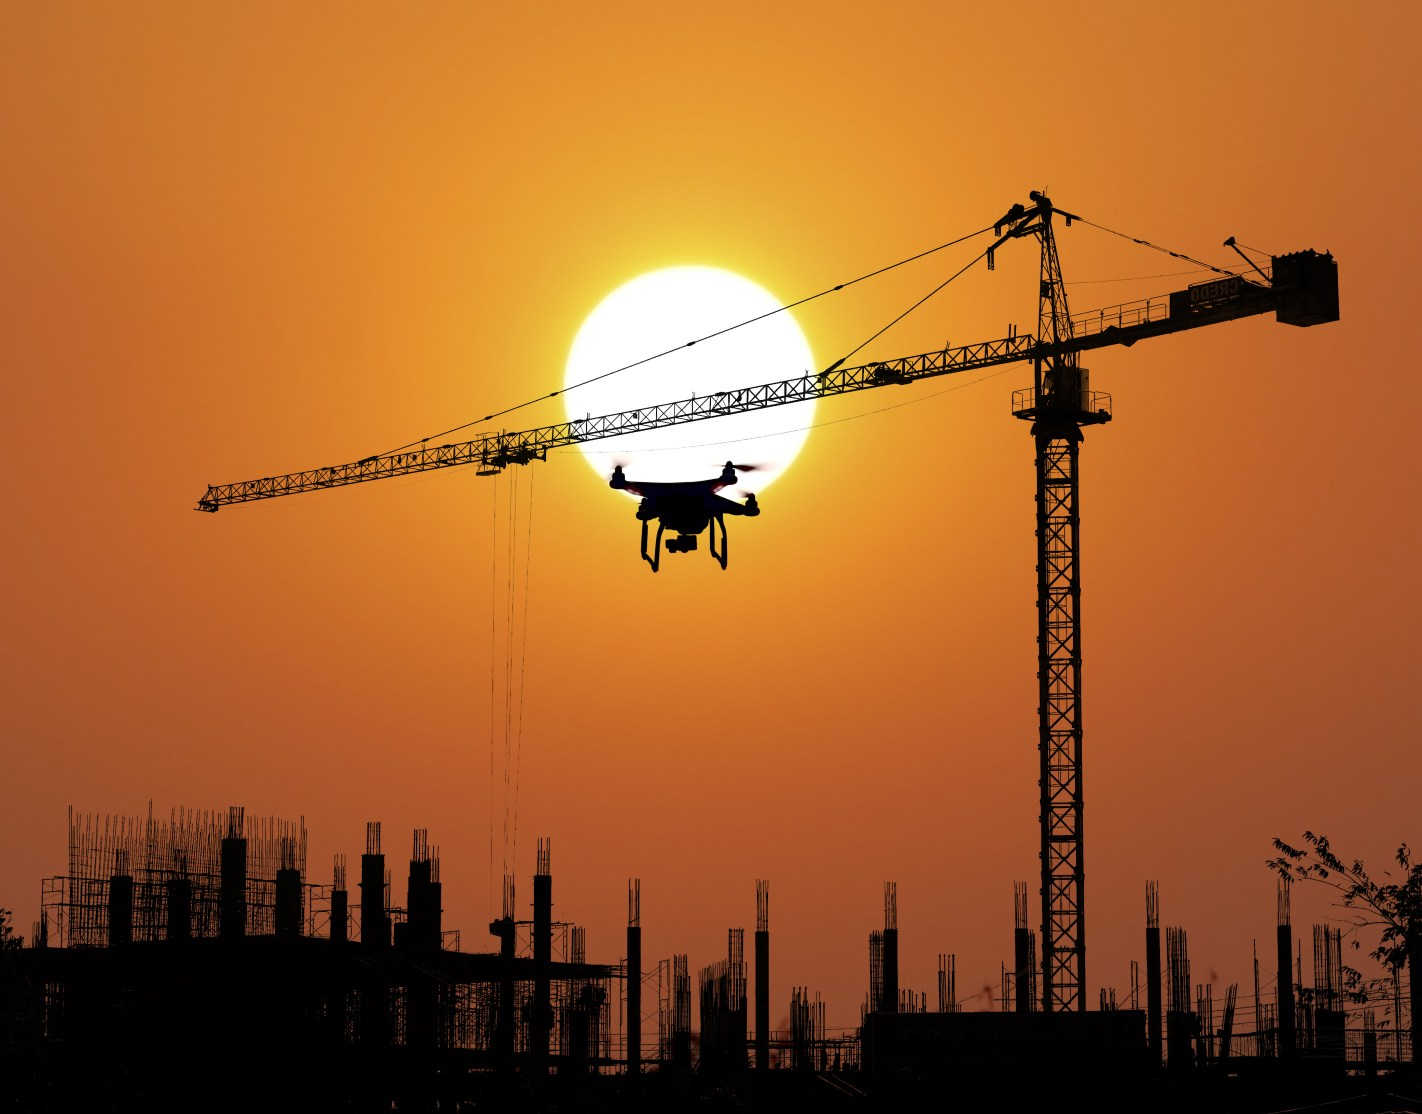 Source: THE DRONE GIRL (Drones in Construction Industry)